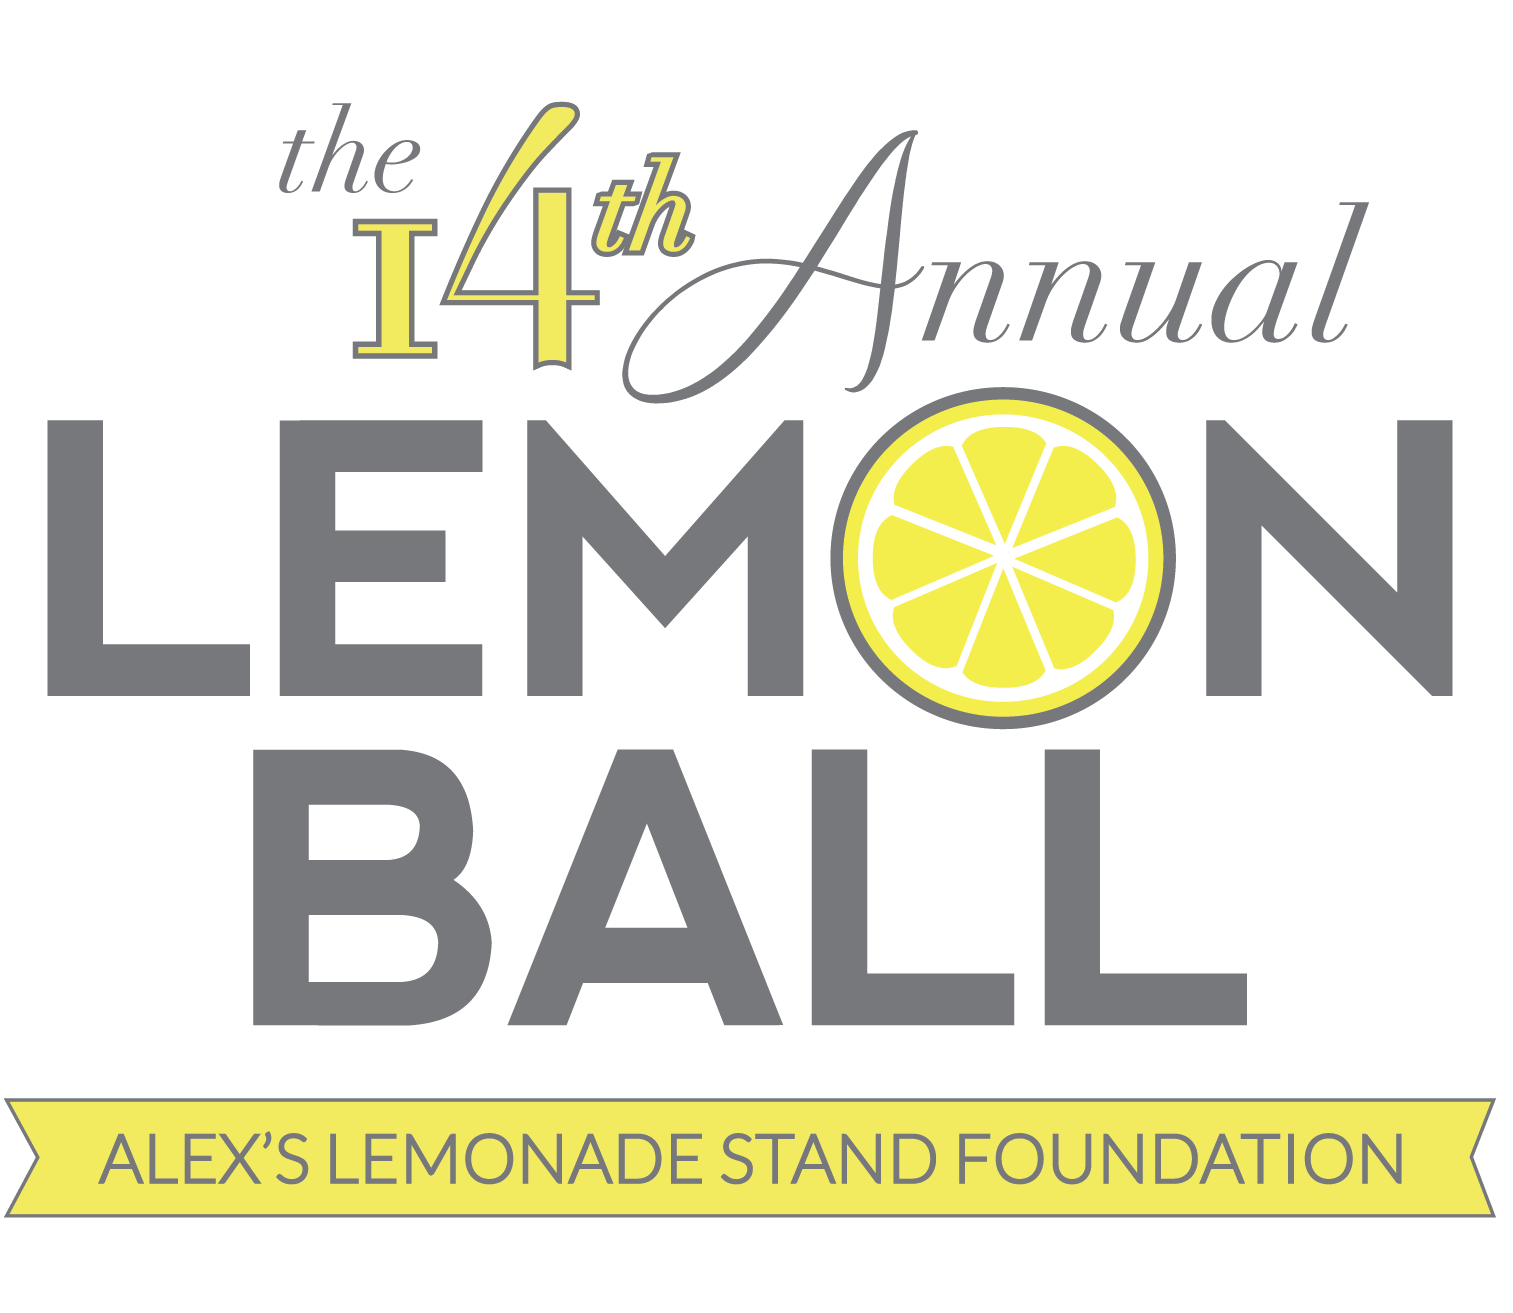 Lemon Ball logo